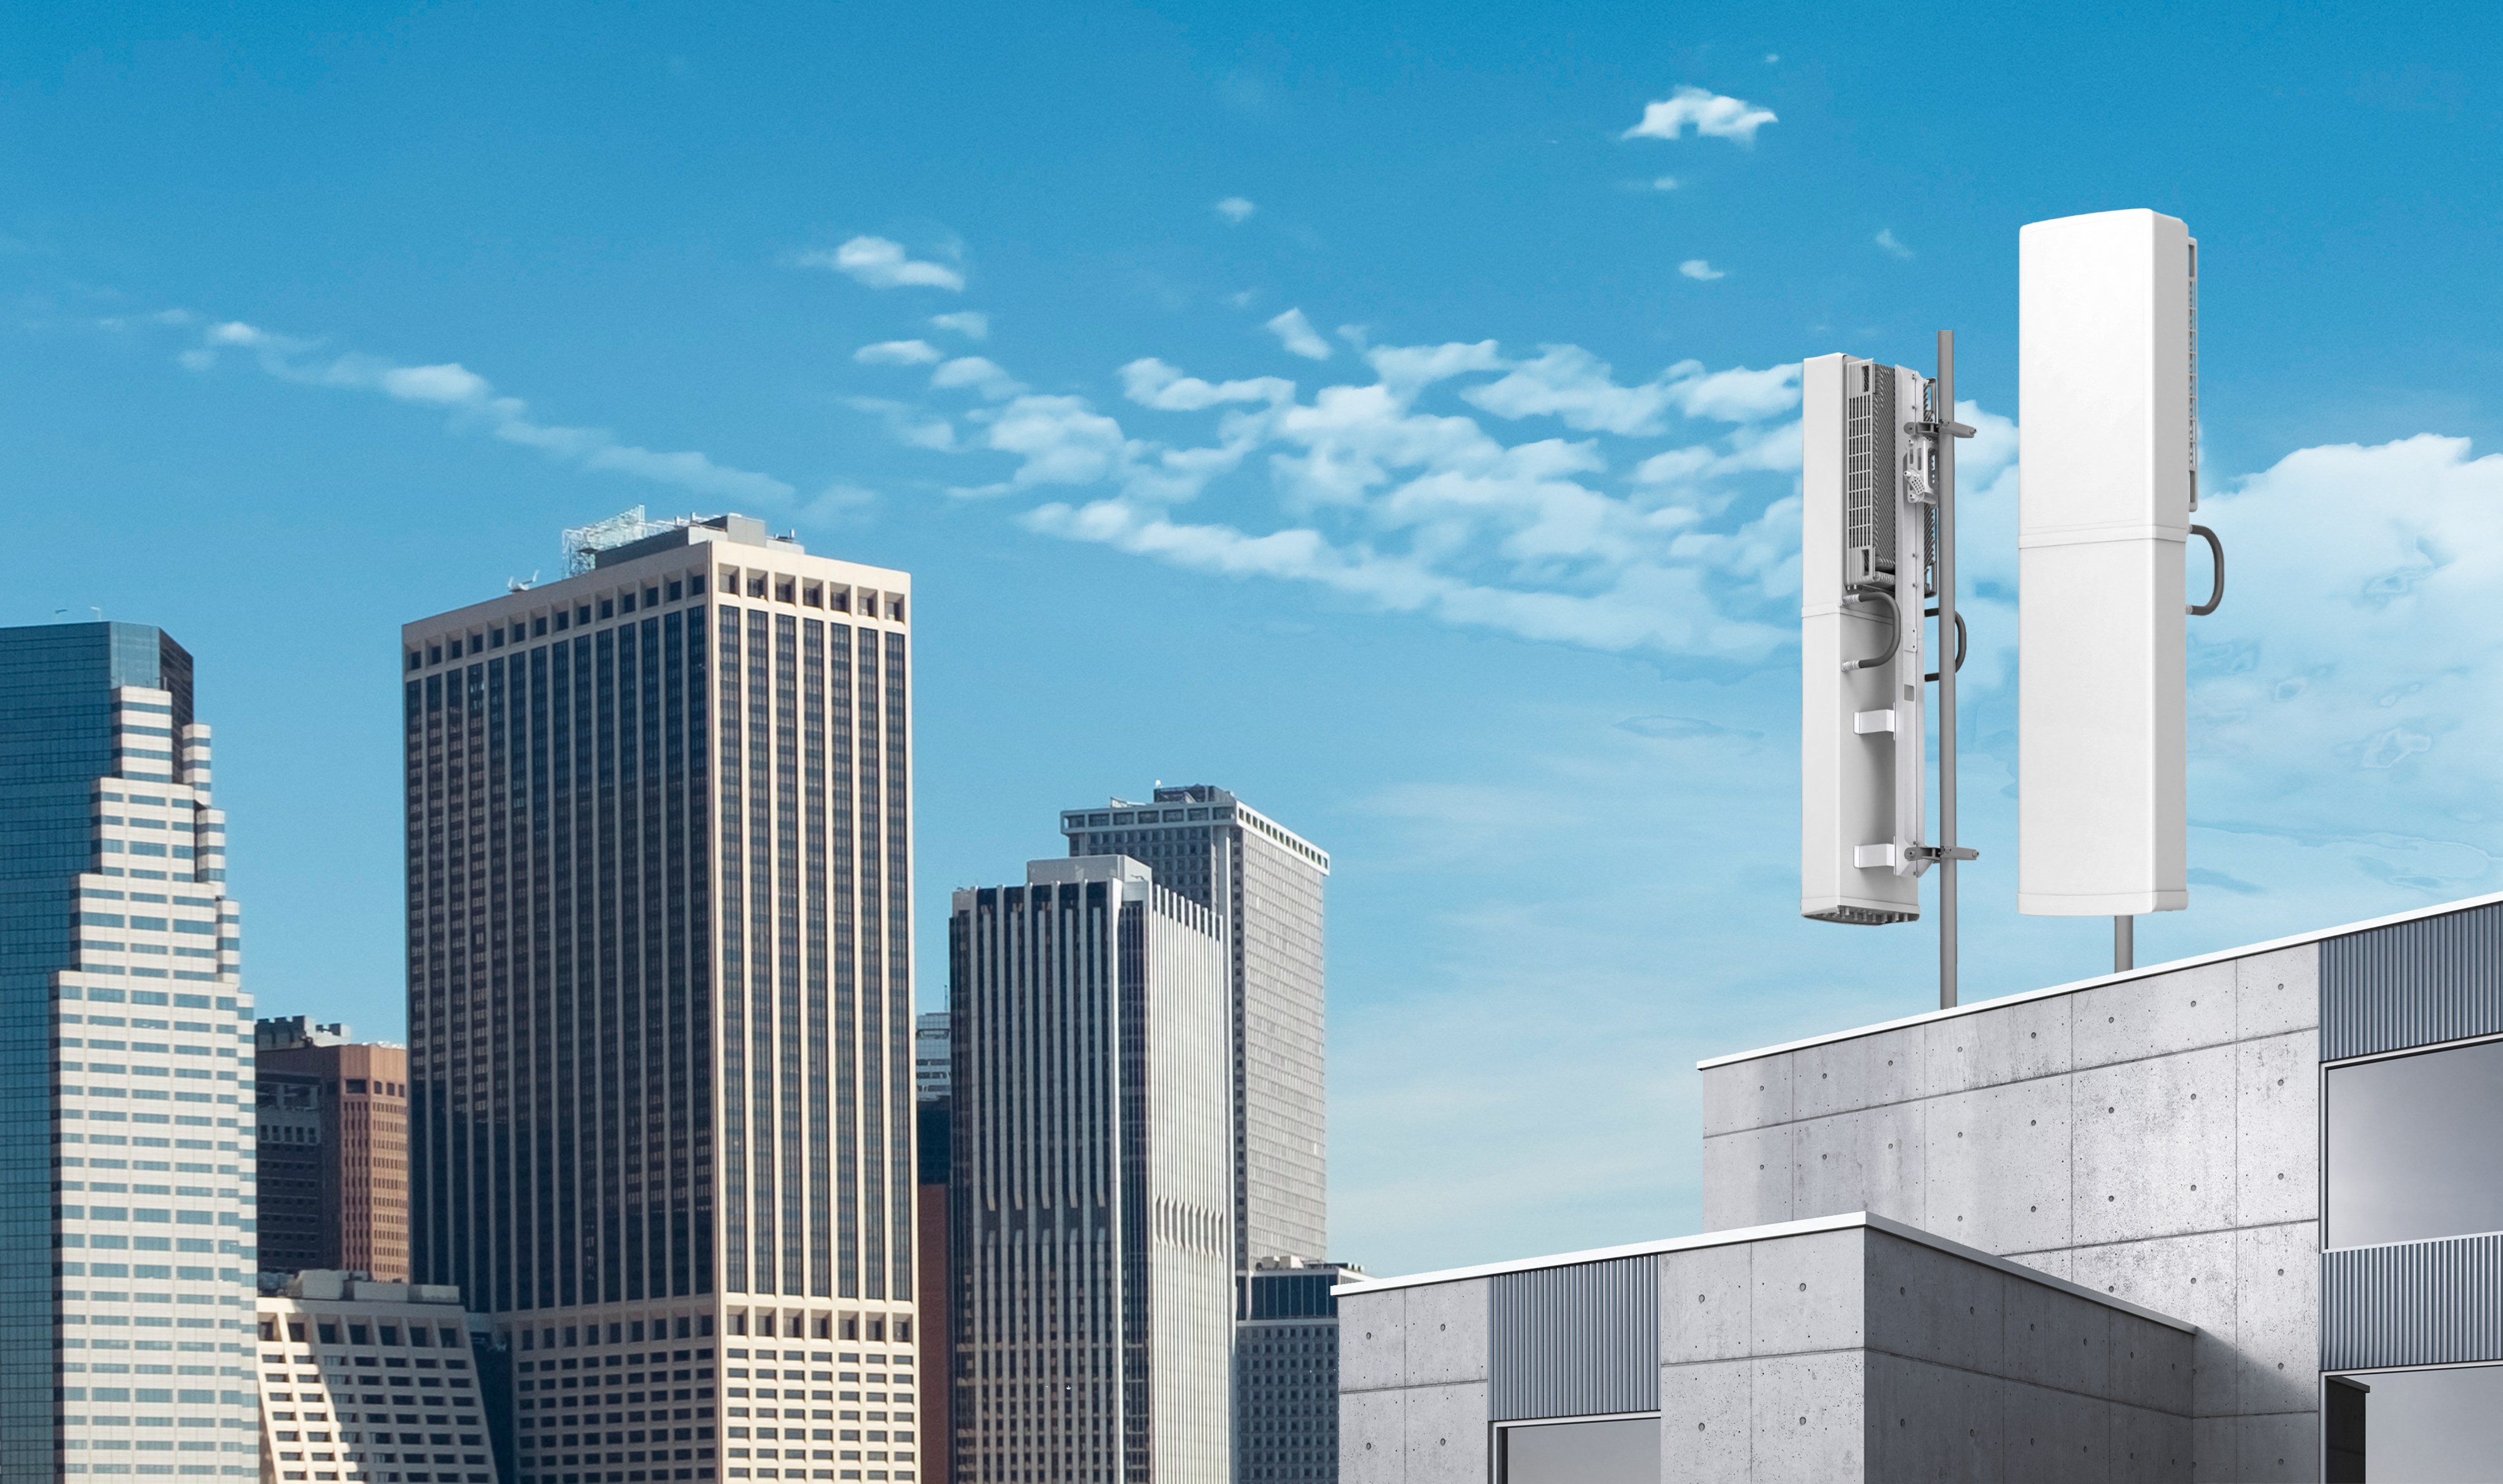 Samsung Introduces New 5G Radio with Integrated Antennas